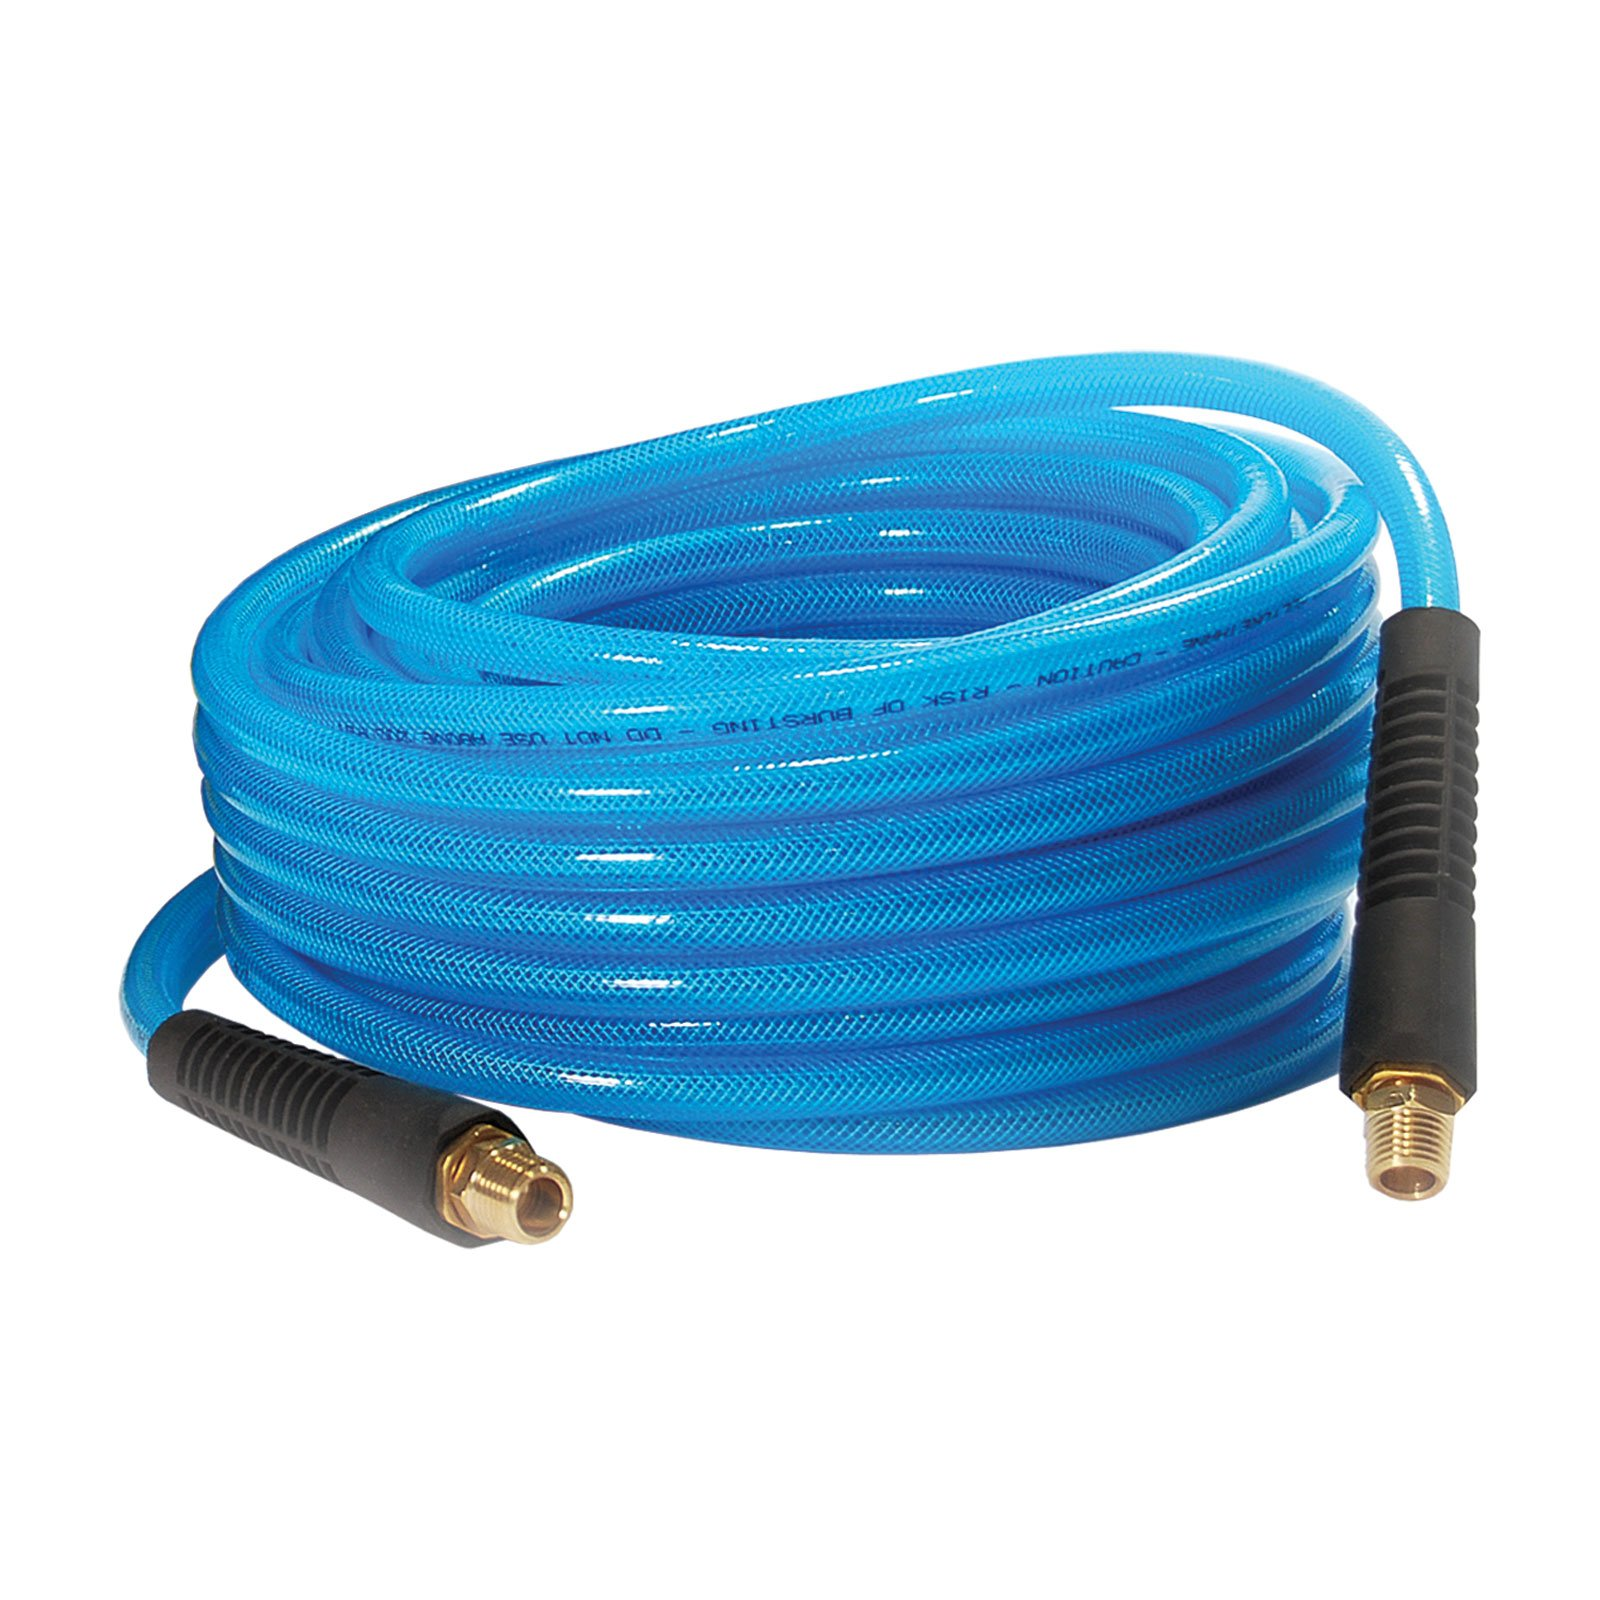 Primefit PU140502-B Reinforced Premium Polyurethane Air Hose with Field Repairable Ends, 1/4'' by 50', 200 psi